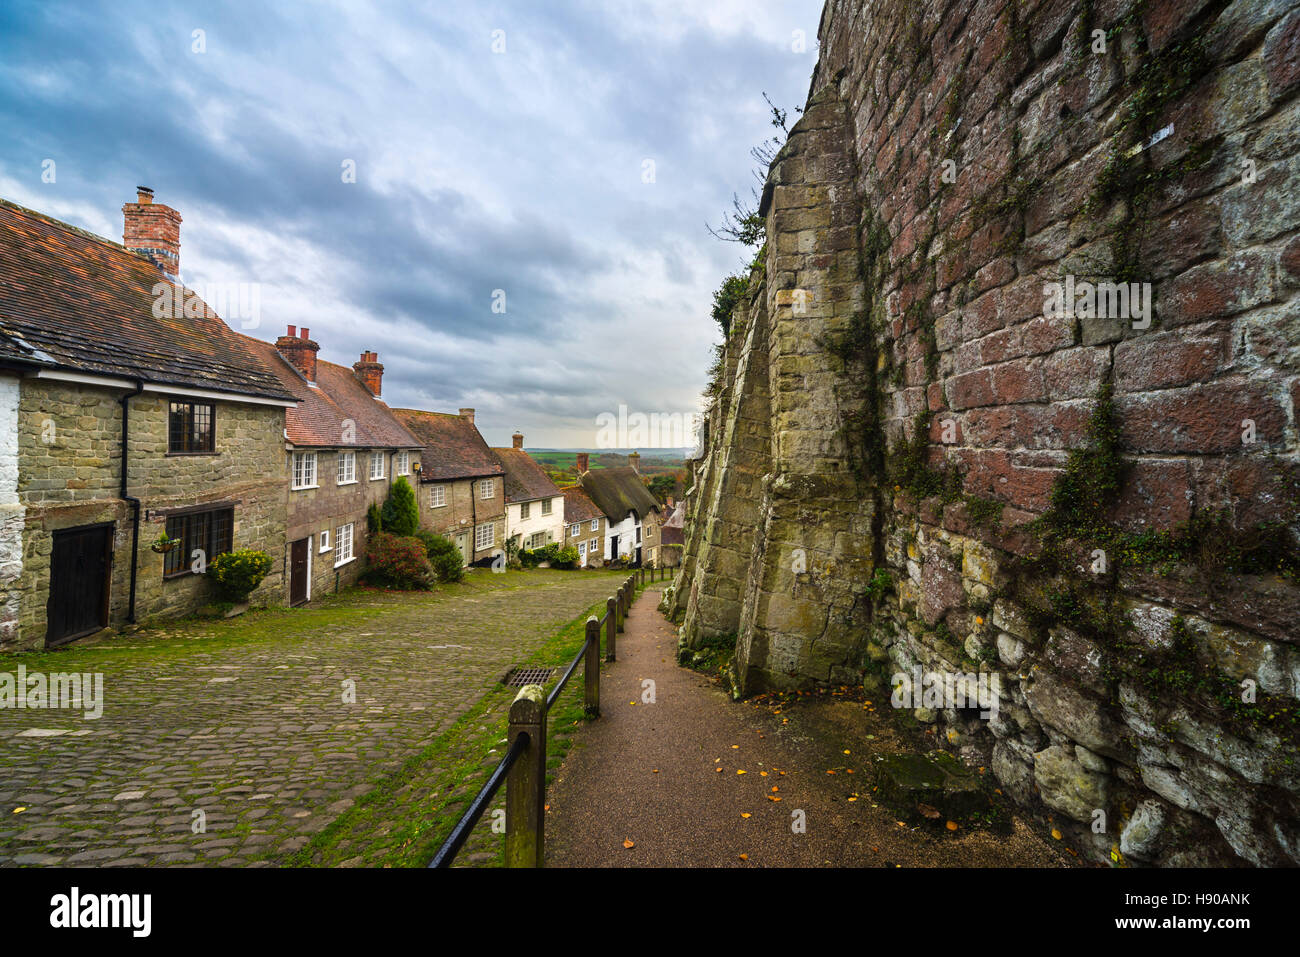 Gold Hill, Shaftesbury, Dorset, UK.  17th November 2016.  UK Weather.  Thickening cloud above the iconic Gold Hill - Stock Image